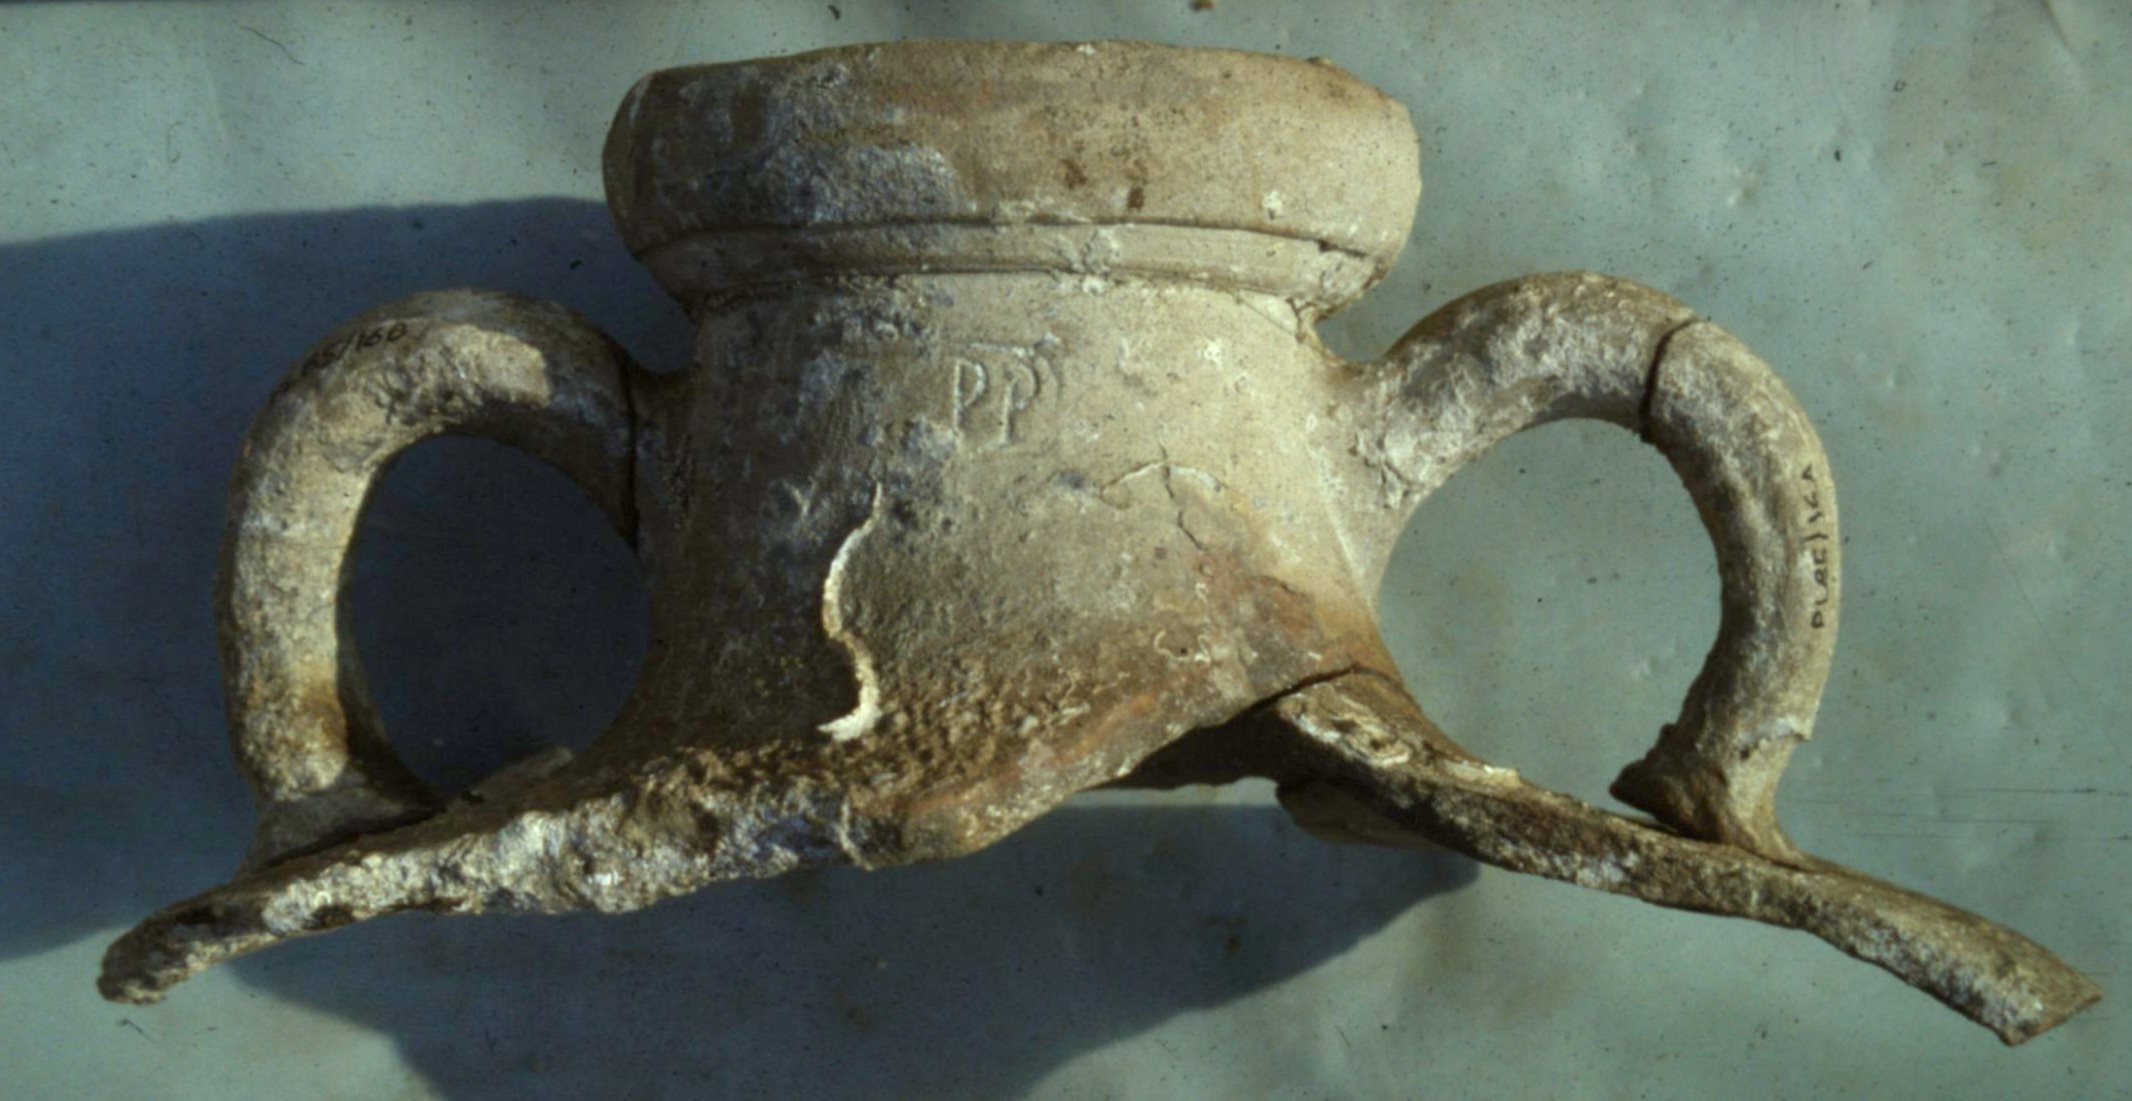 An Africano Grande amphora with the stamp ending PP visible on the neck.